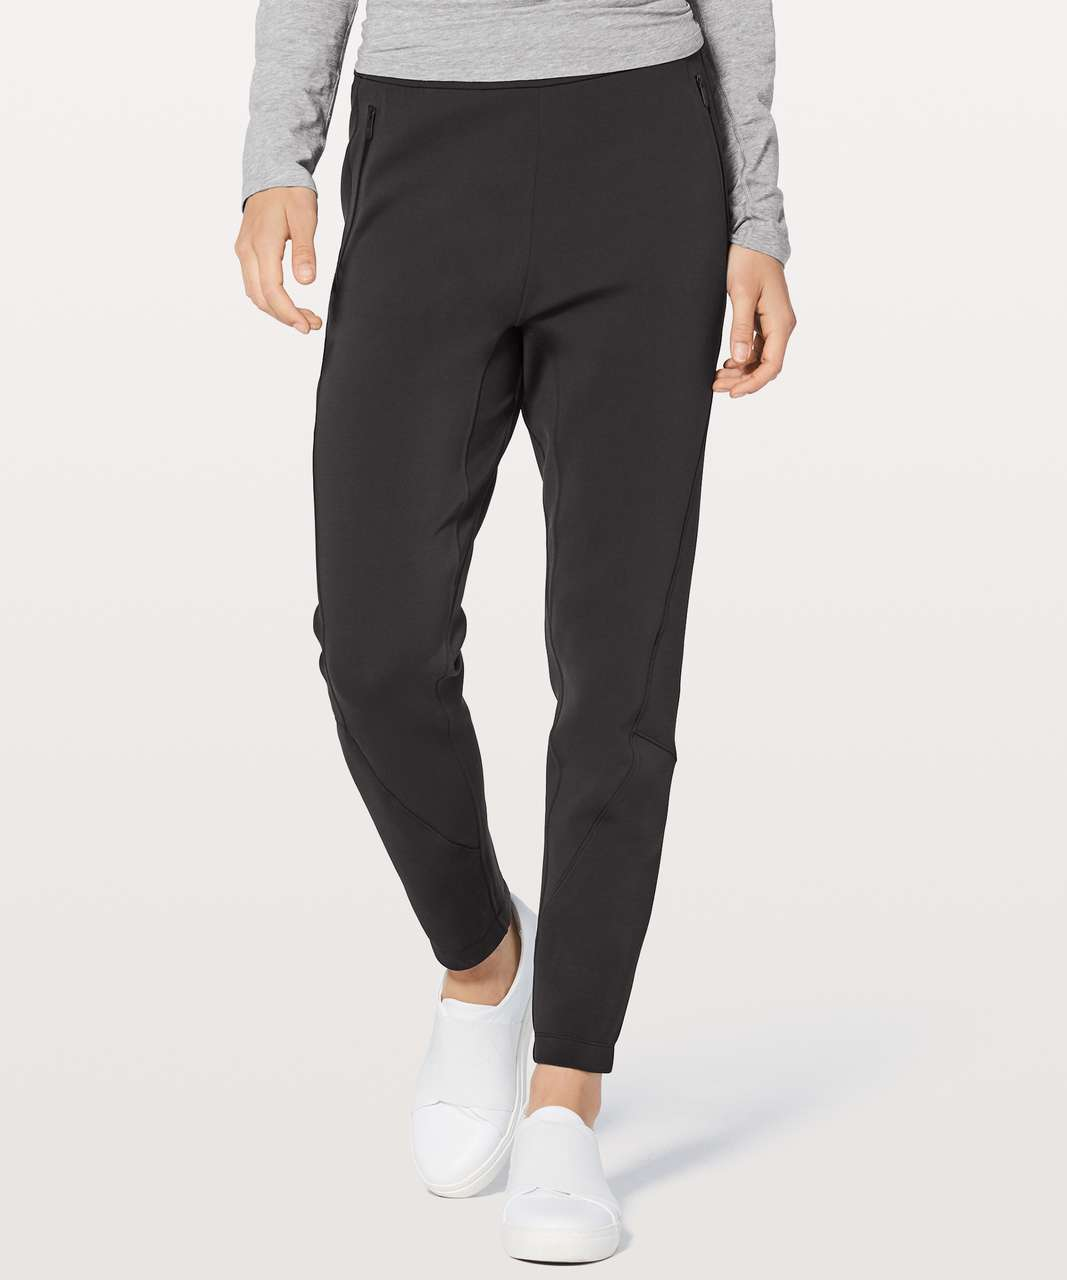 "Lululemon Tech Lux Pant 27.5"" - Black"